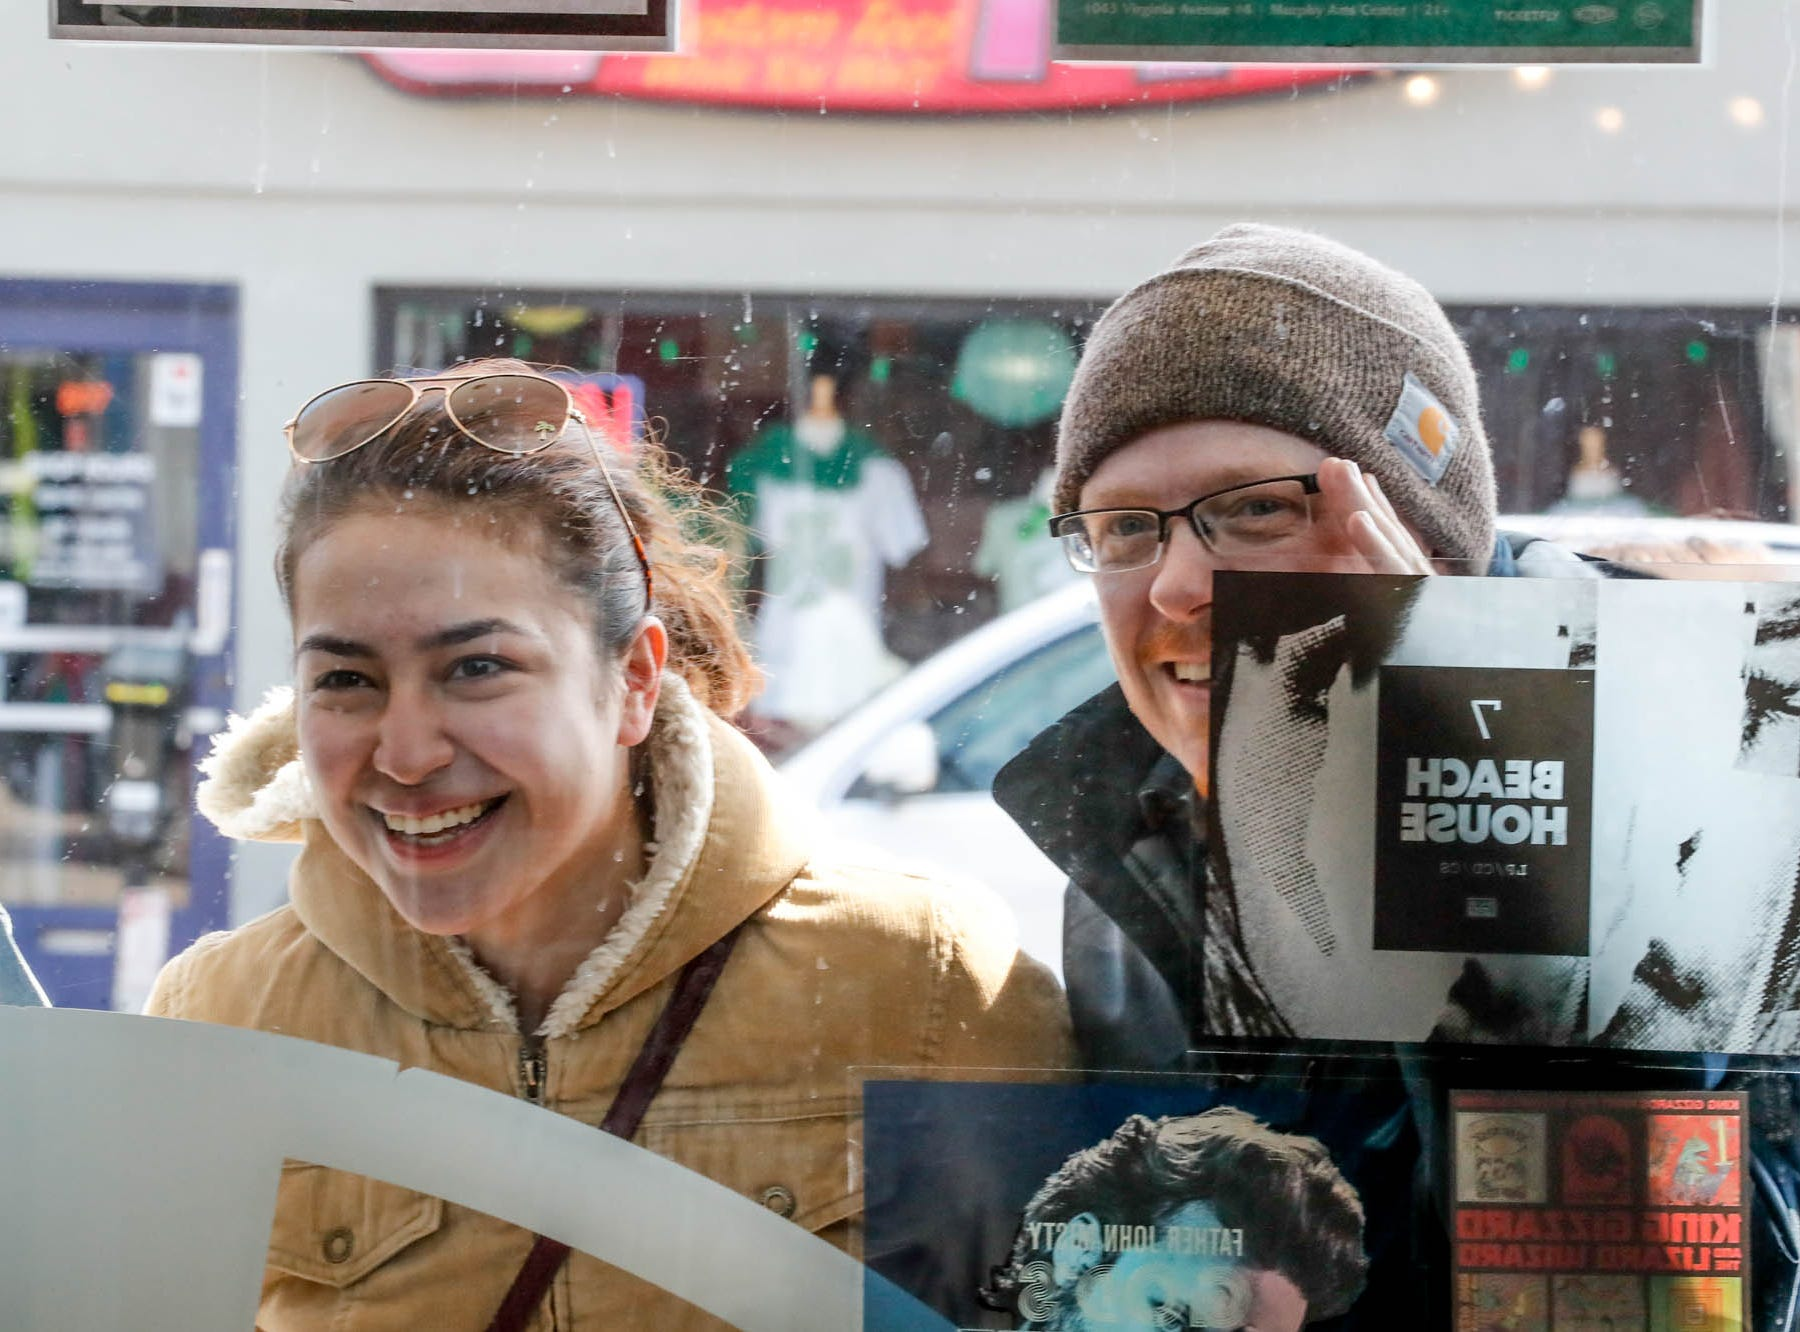 Mumford & Sons fans peek through the front window during the band's special in-store appearance at Indy CD & Vinyl on Monday, March 25, 2019.